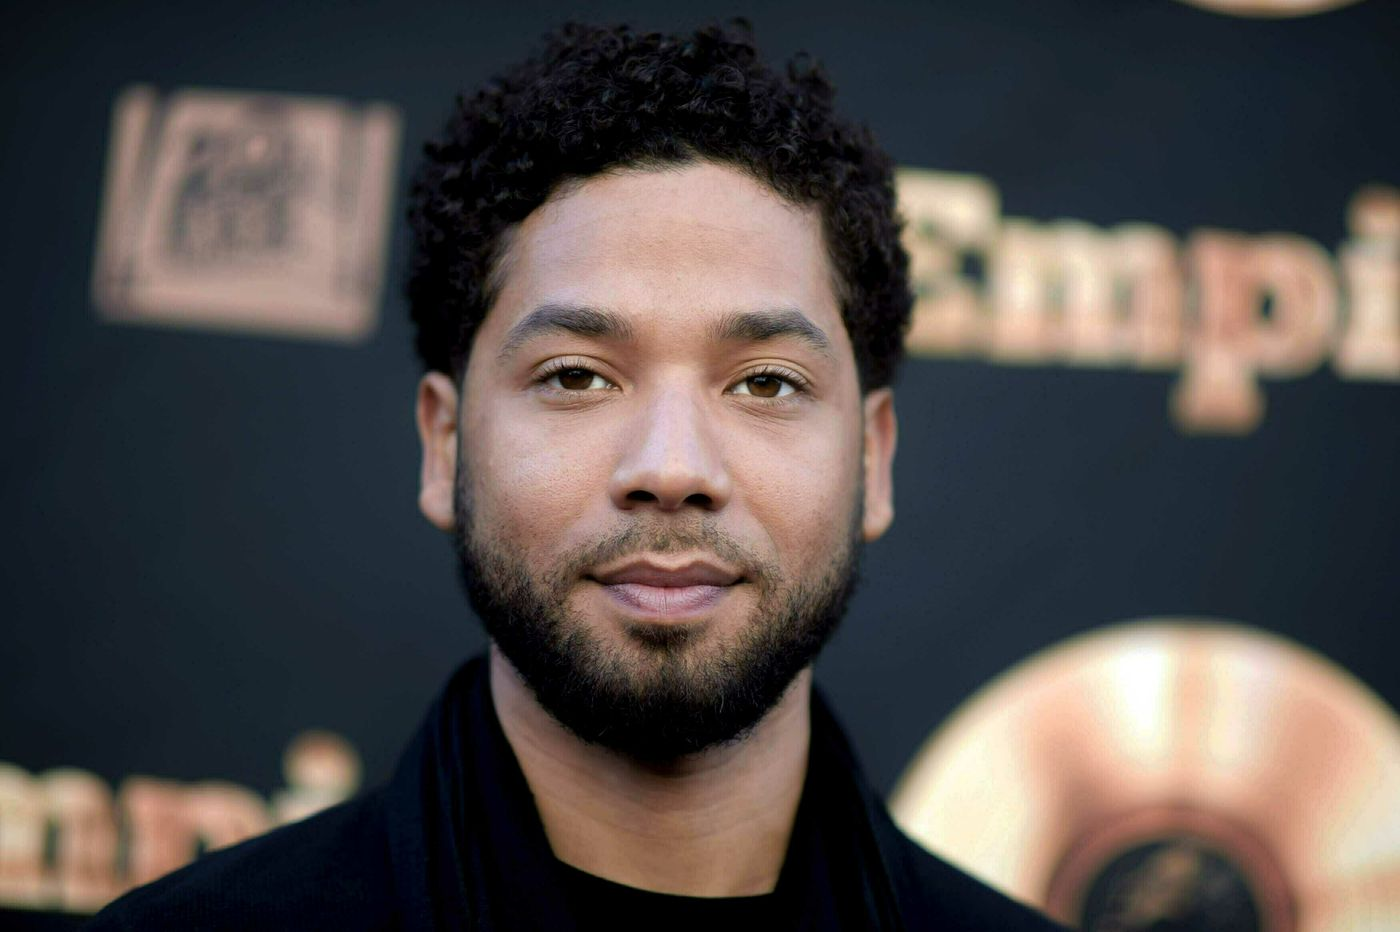 Jussie Smollet Faked Attack Because He Was Unhappy With His